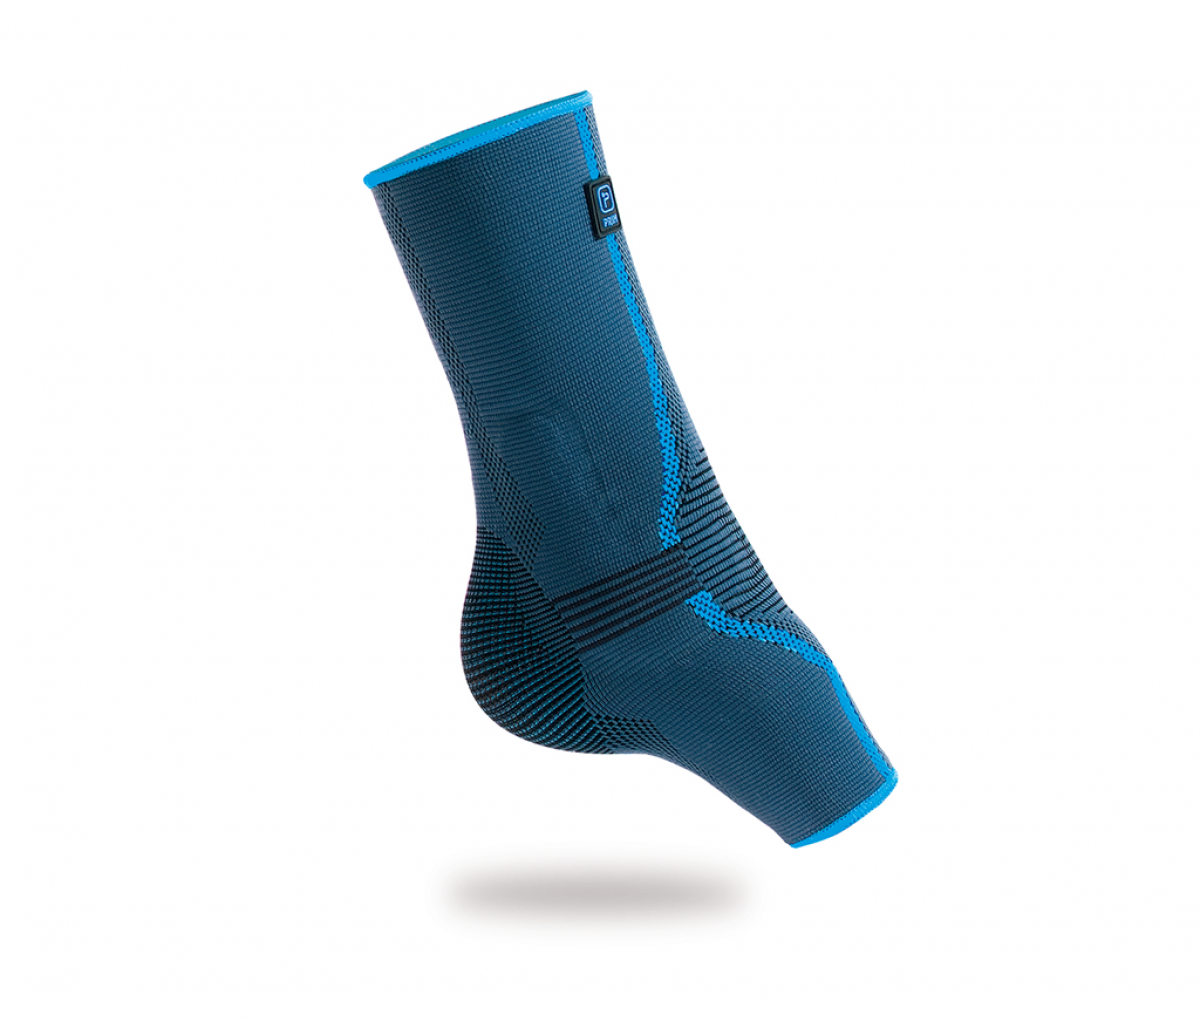 AQTIVO ANKLE BRACE WITH SILICONE INSERT - M P705